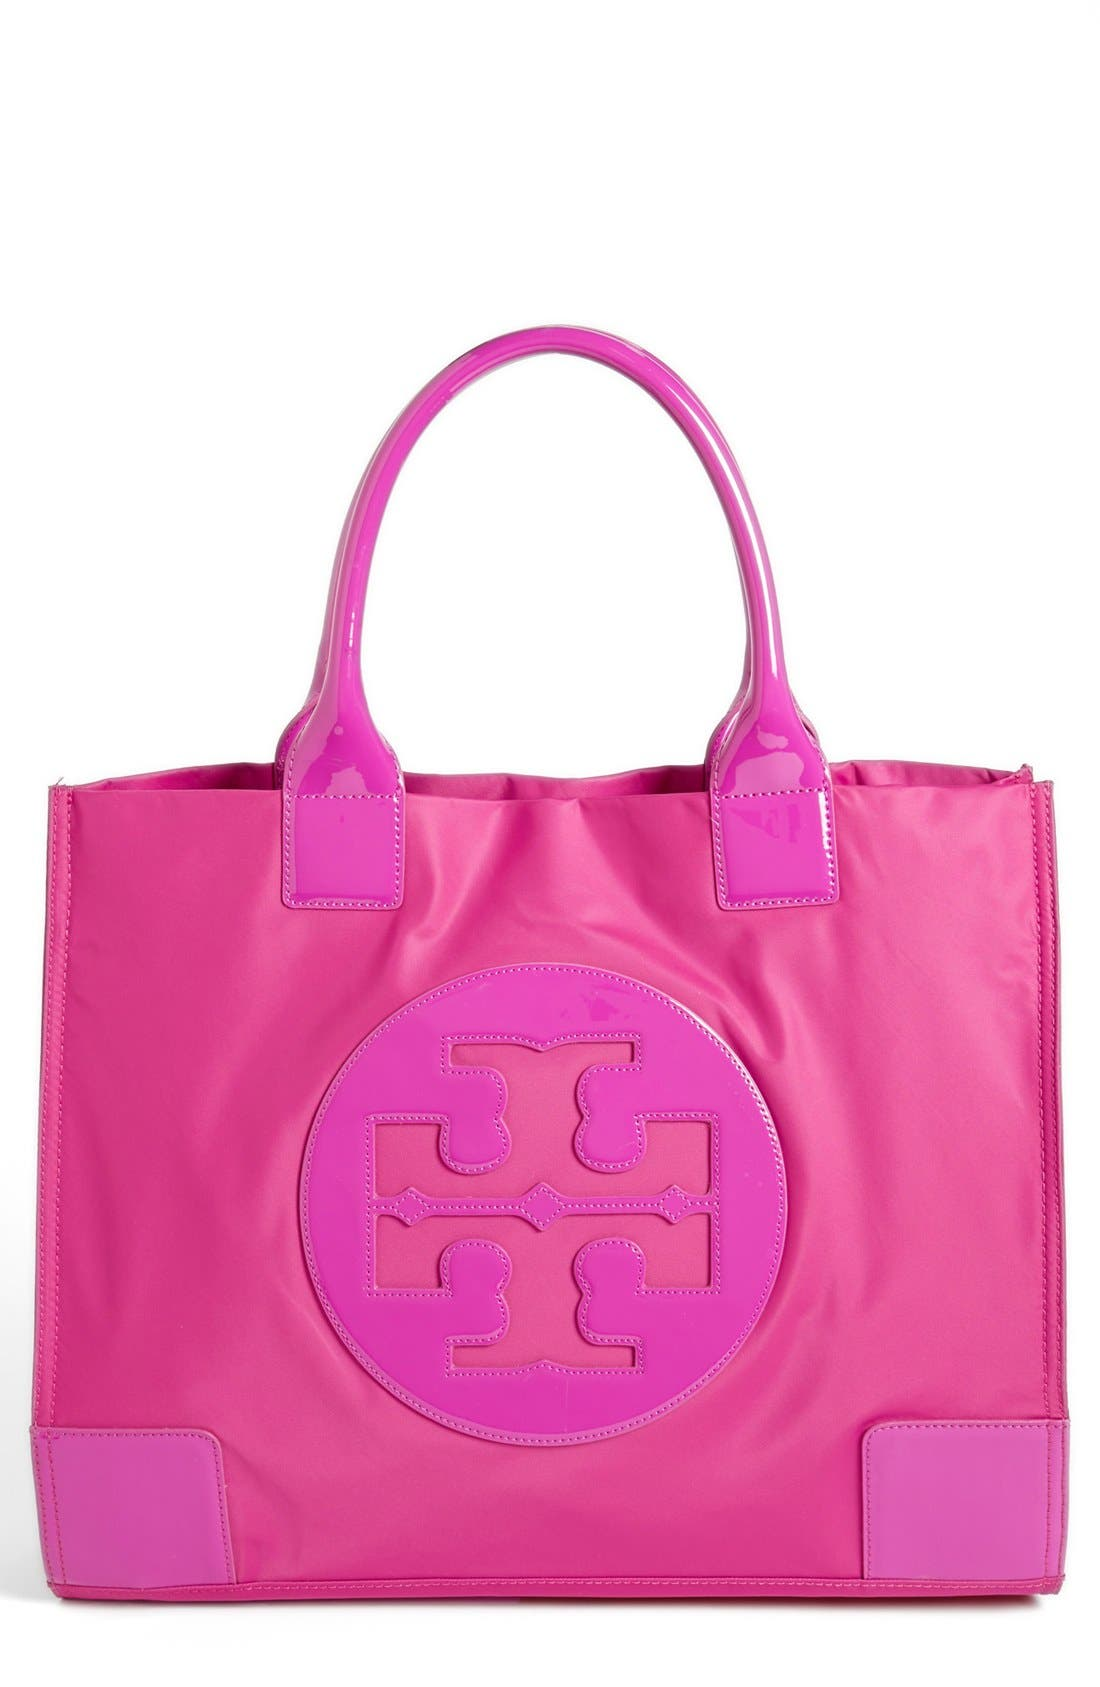 Alternate Image 1 Selected - Tory Burch 'Ella' Tote